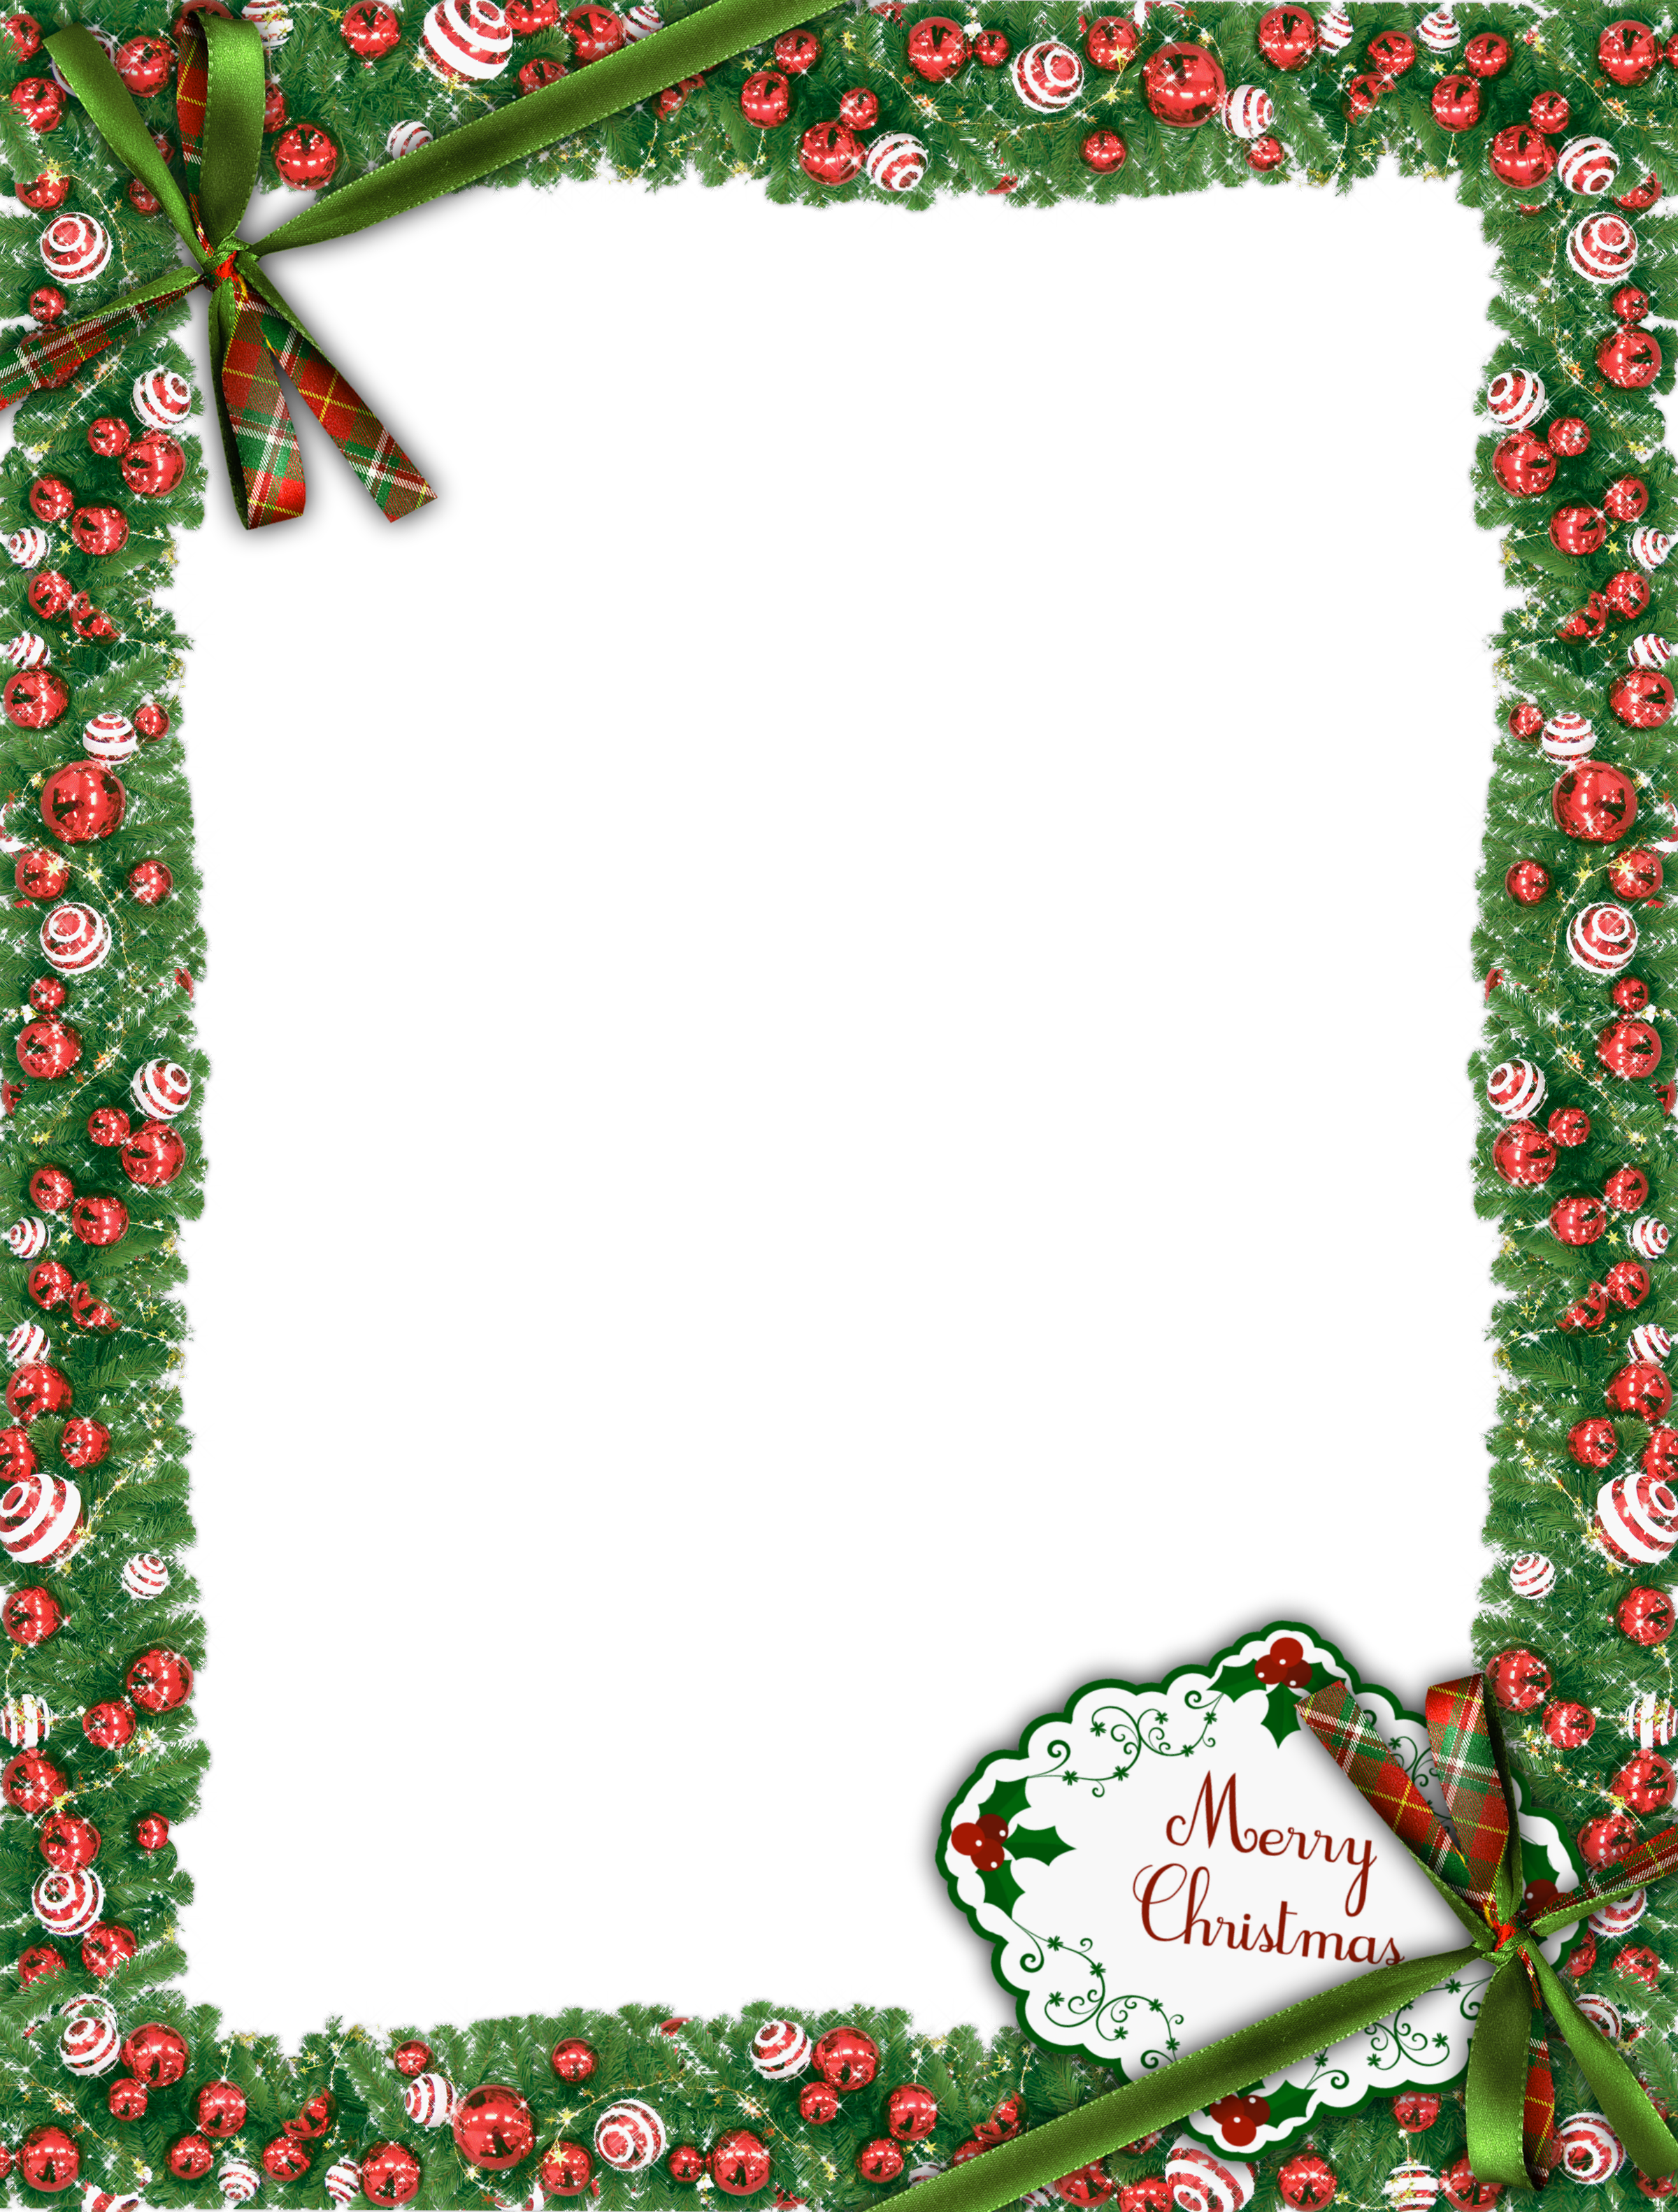 Merry Christmas Green PNG Photo Frame.